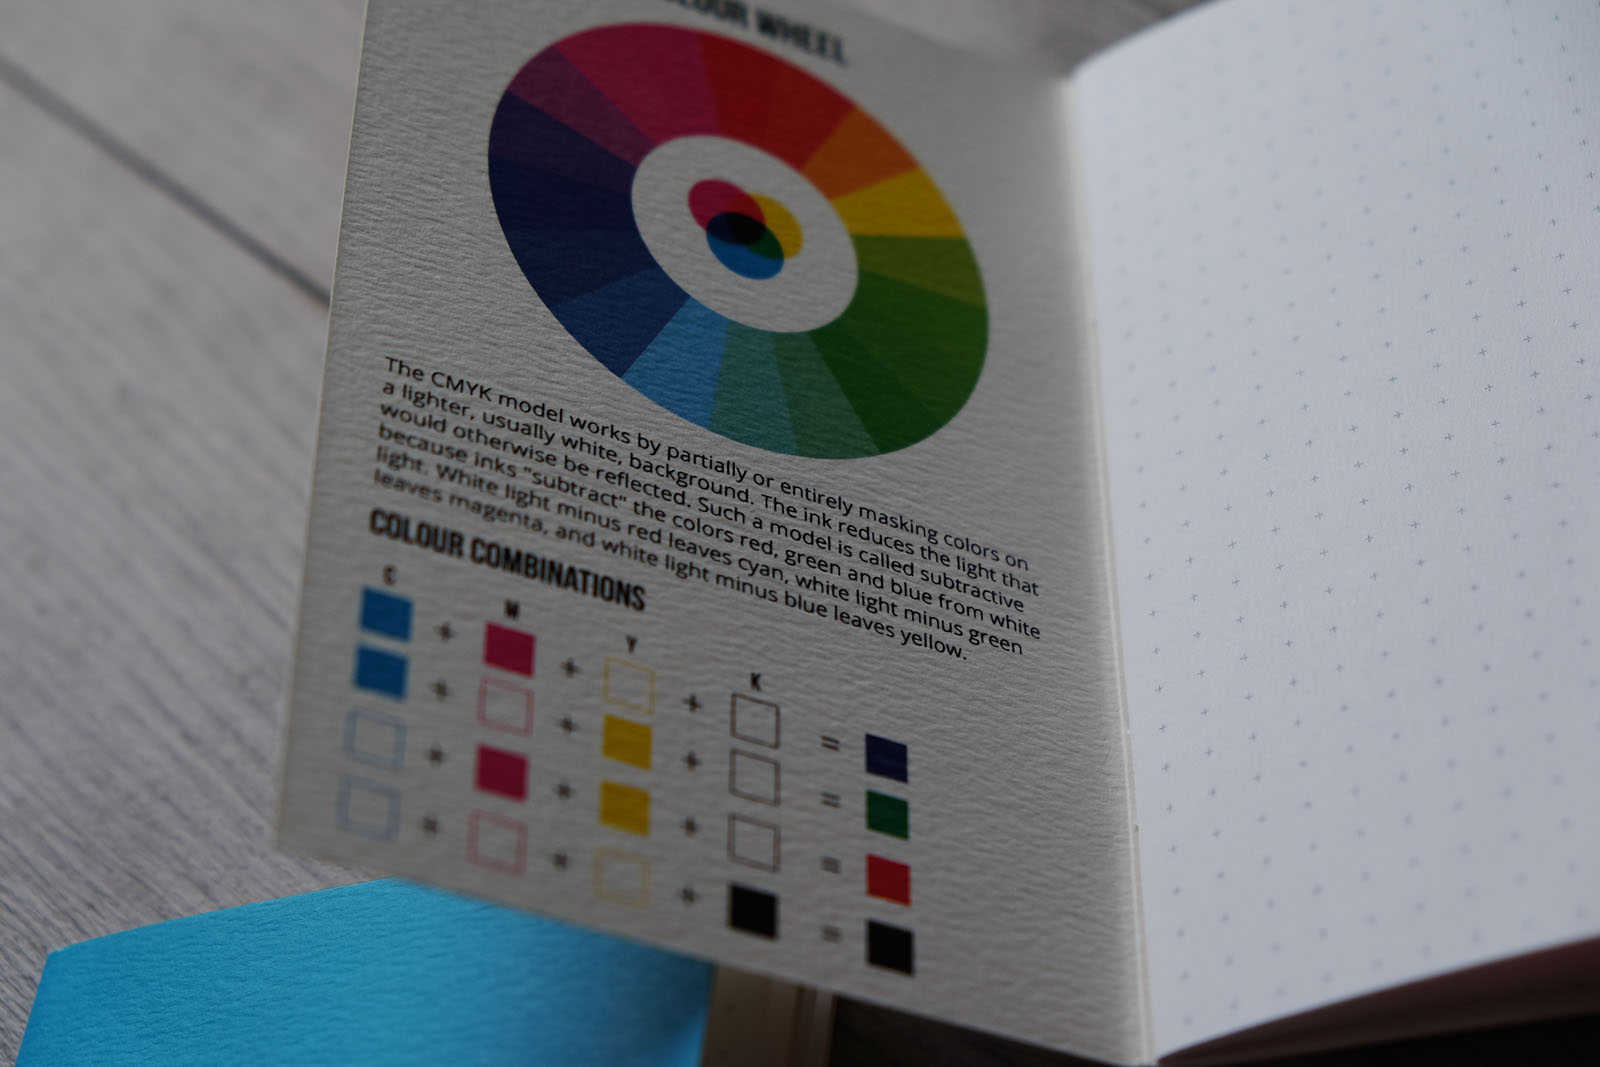 CMYK Colour Edition Pocket Notebooks